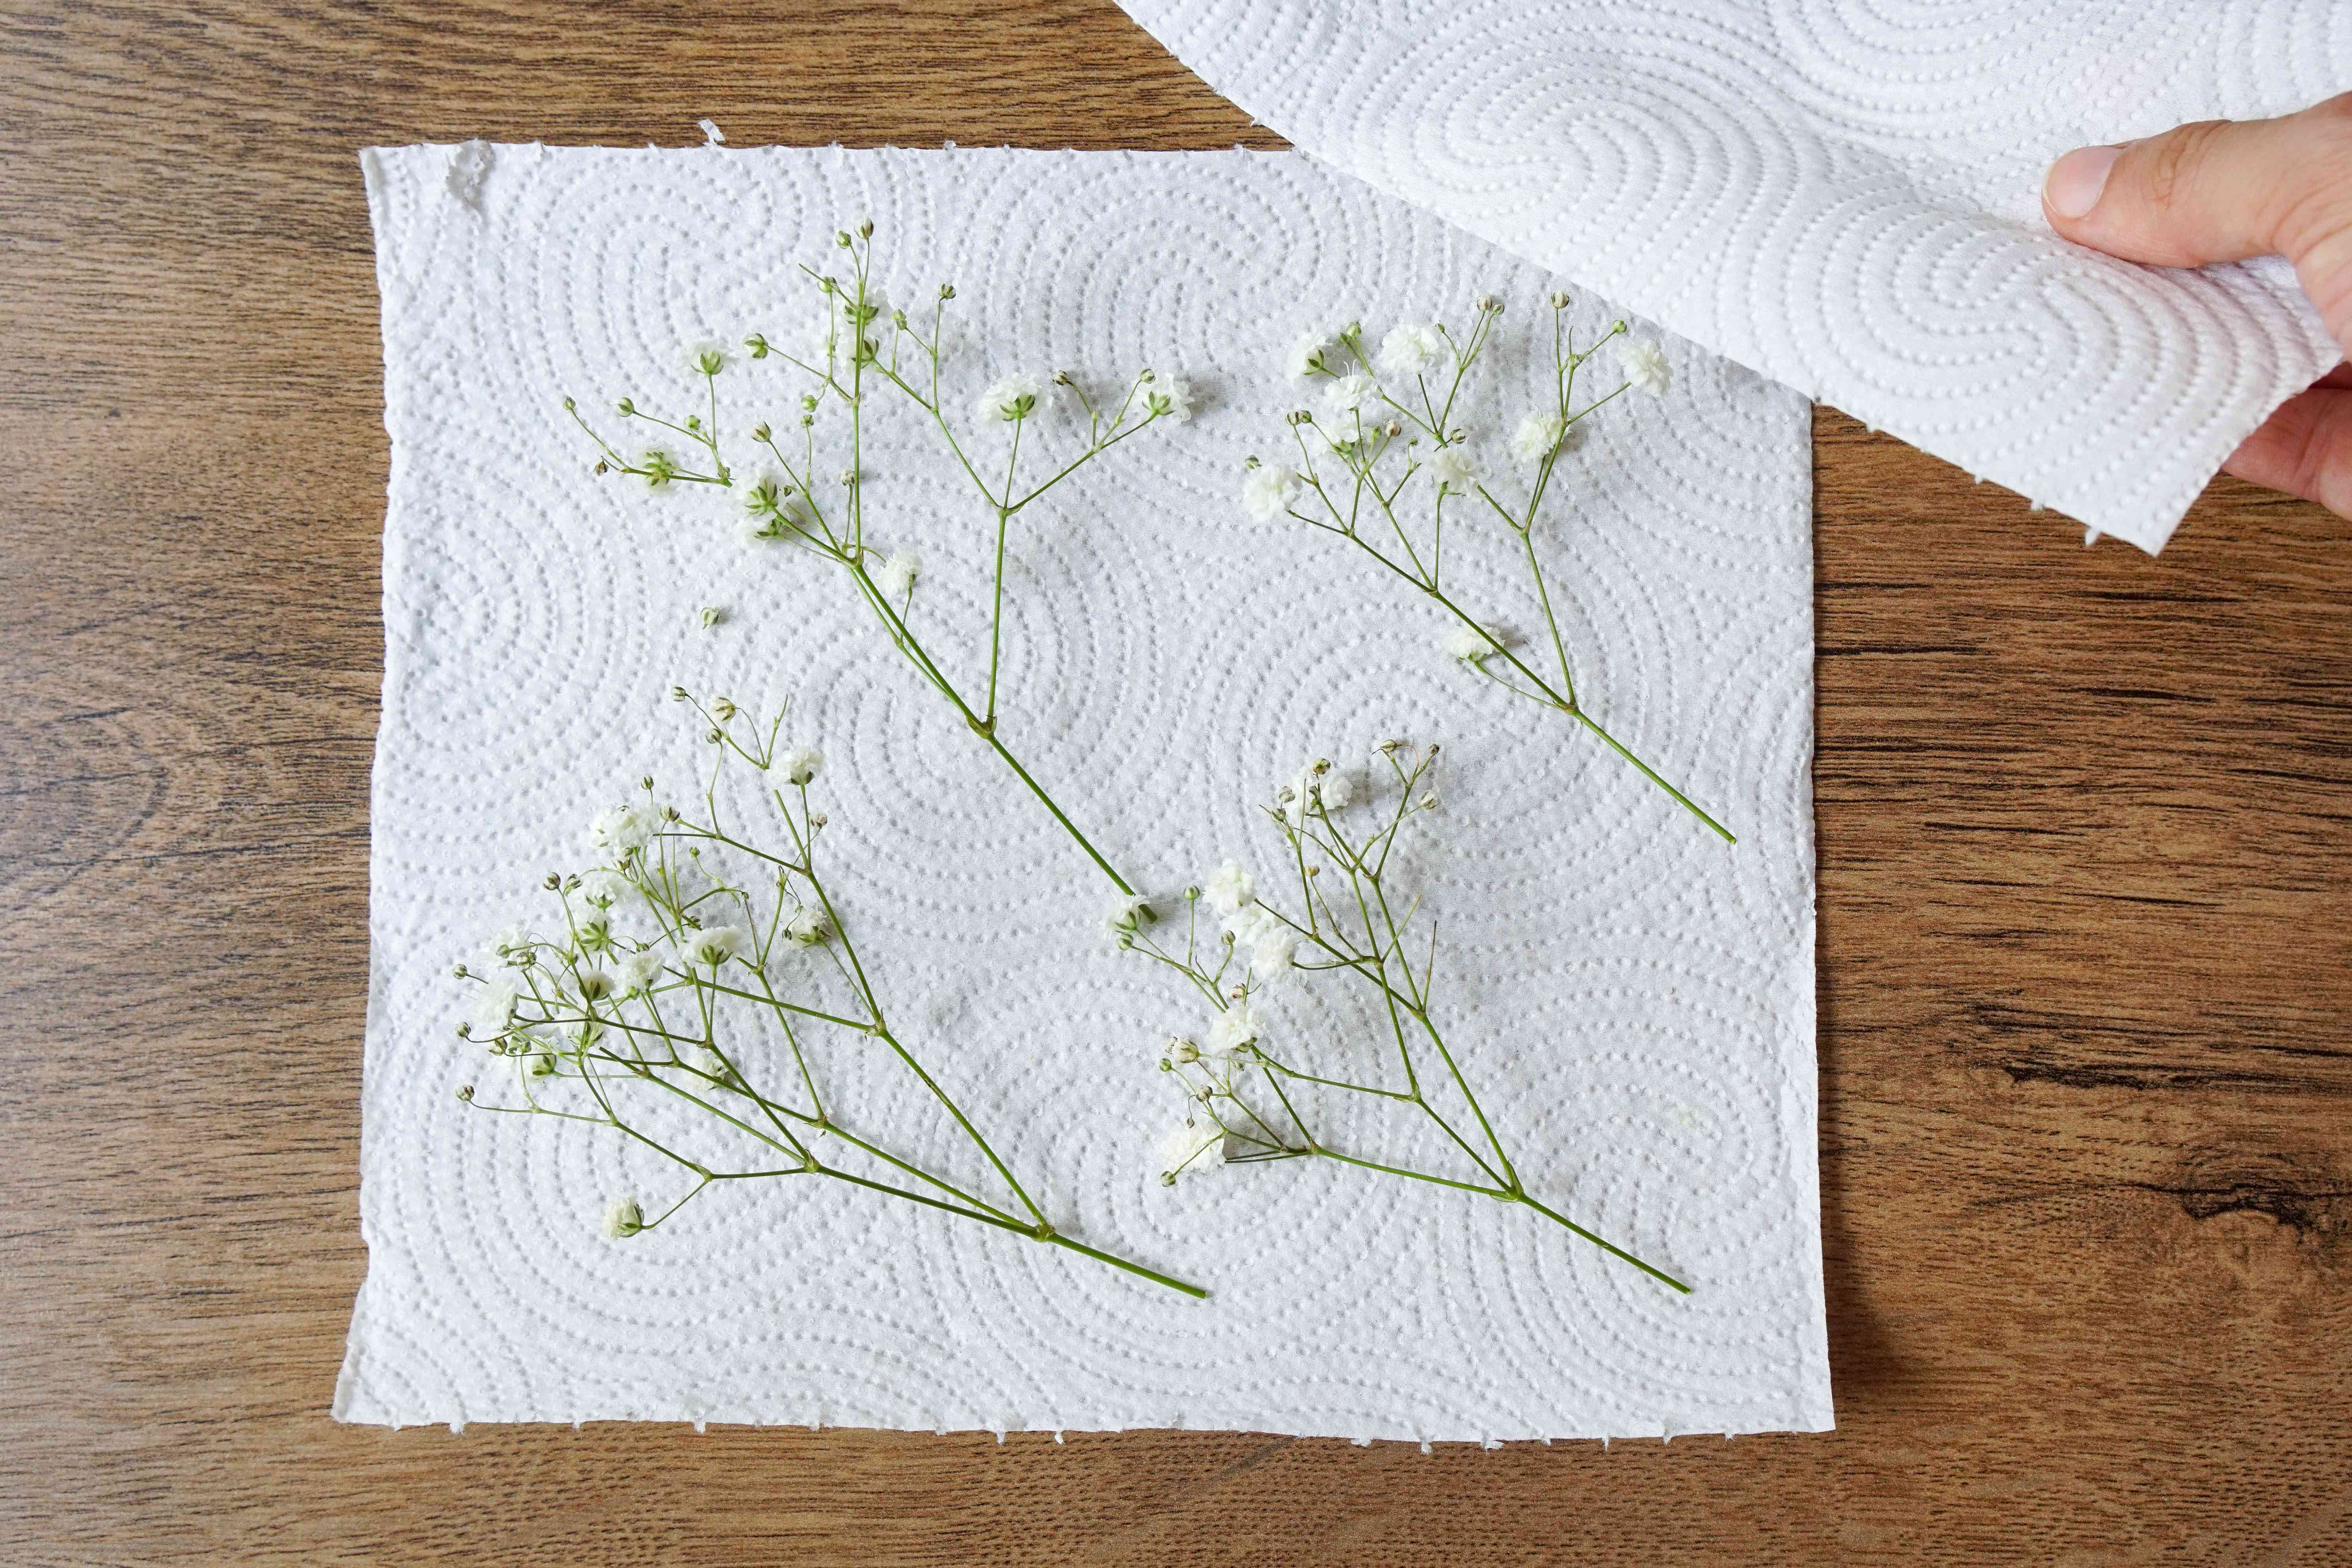 fresh baby's breath blooms on paper towel with another towel layered over